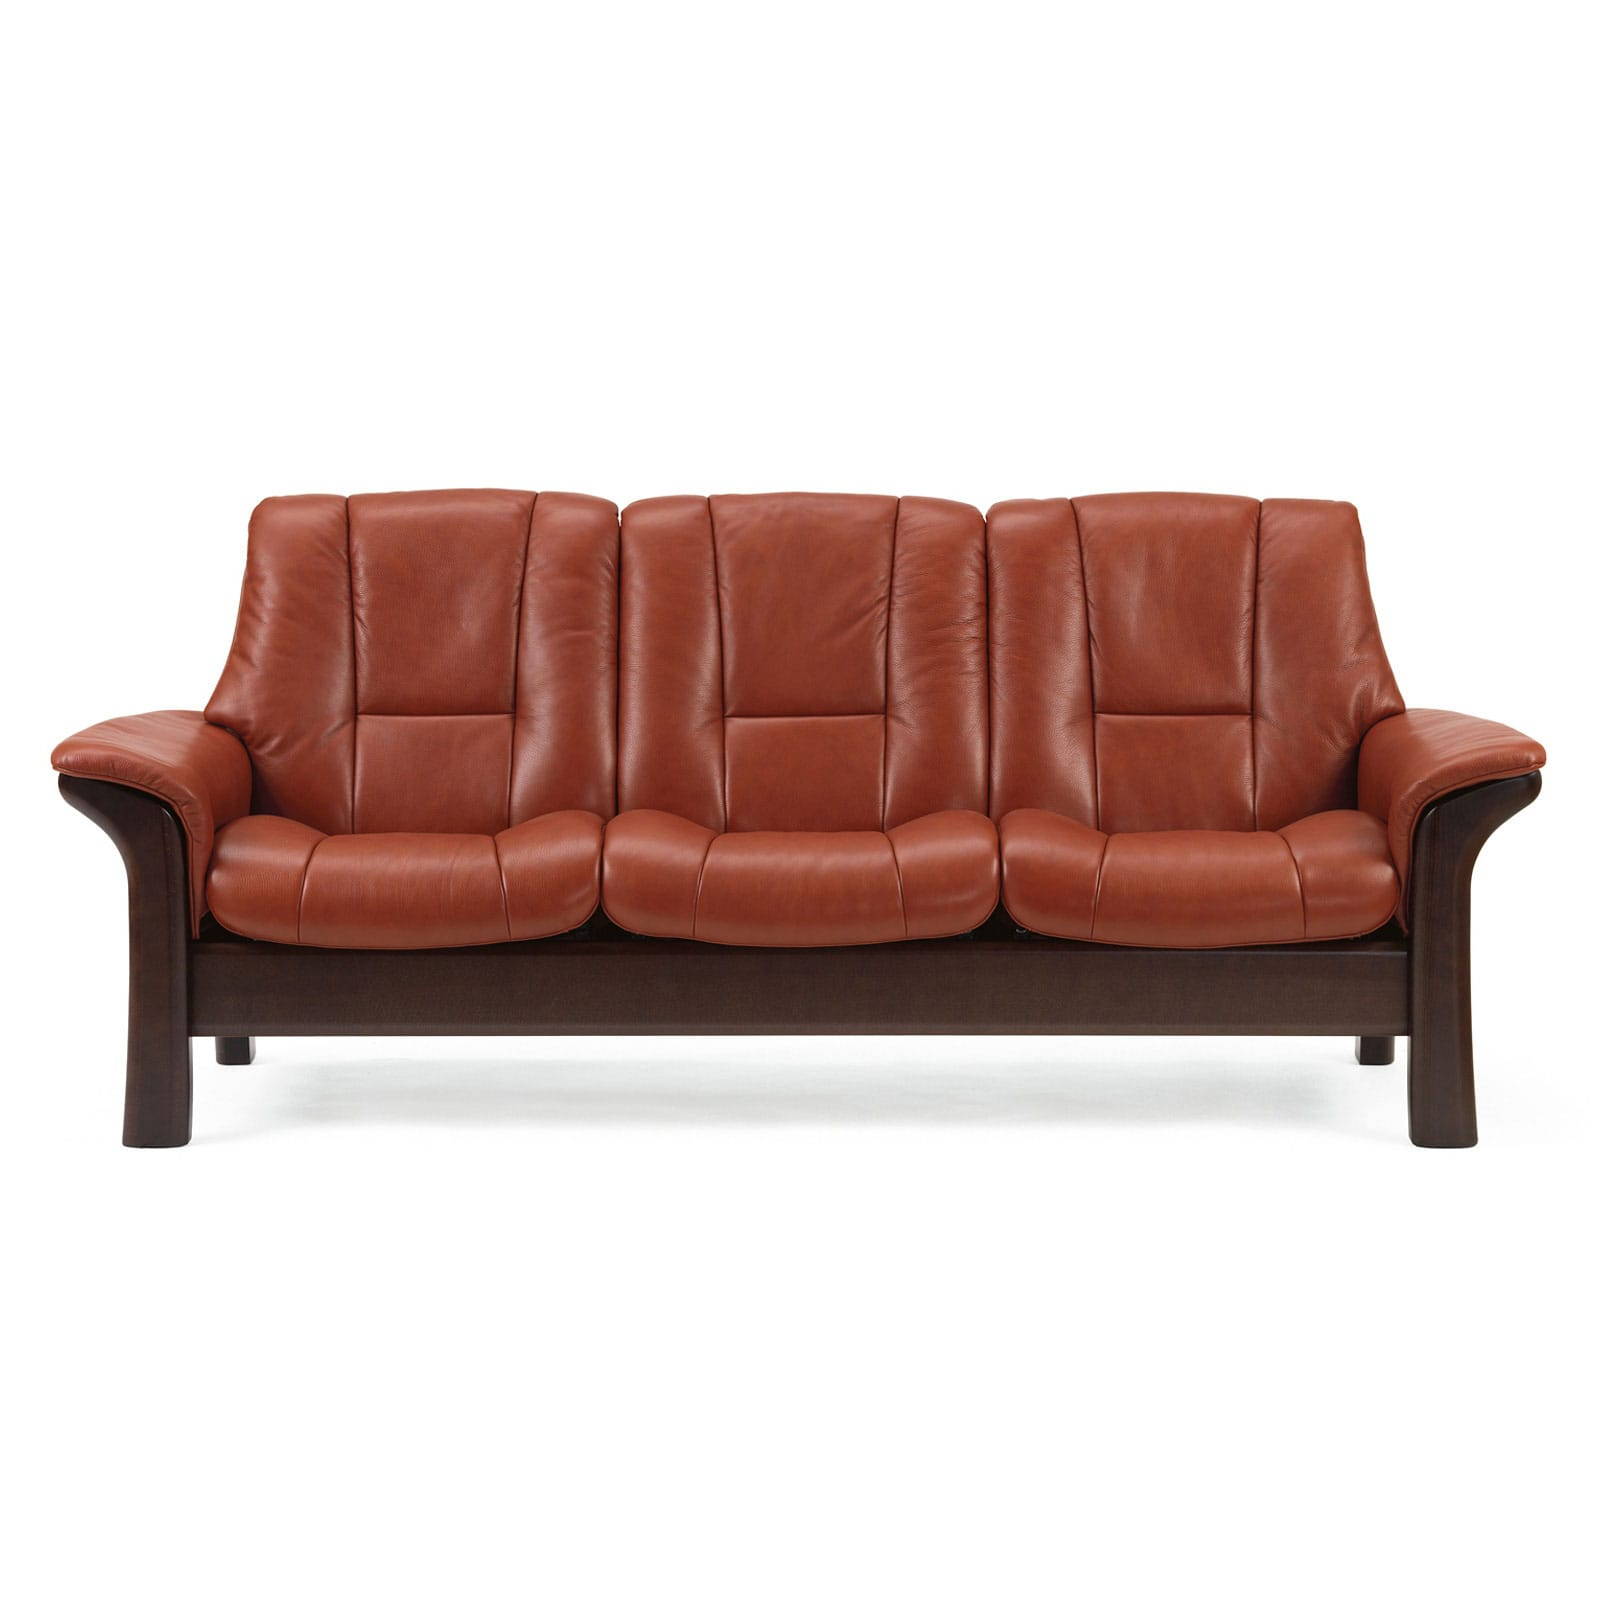 stressless sofa 3 sitzer windsor m niedrig paloma copper. Black Bedroom Furniture Sets. Home Design Ideas